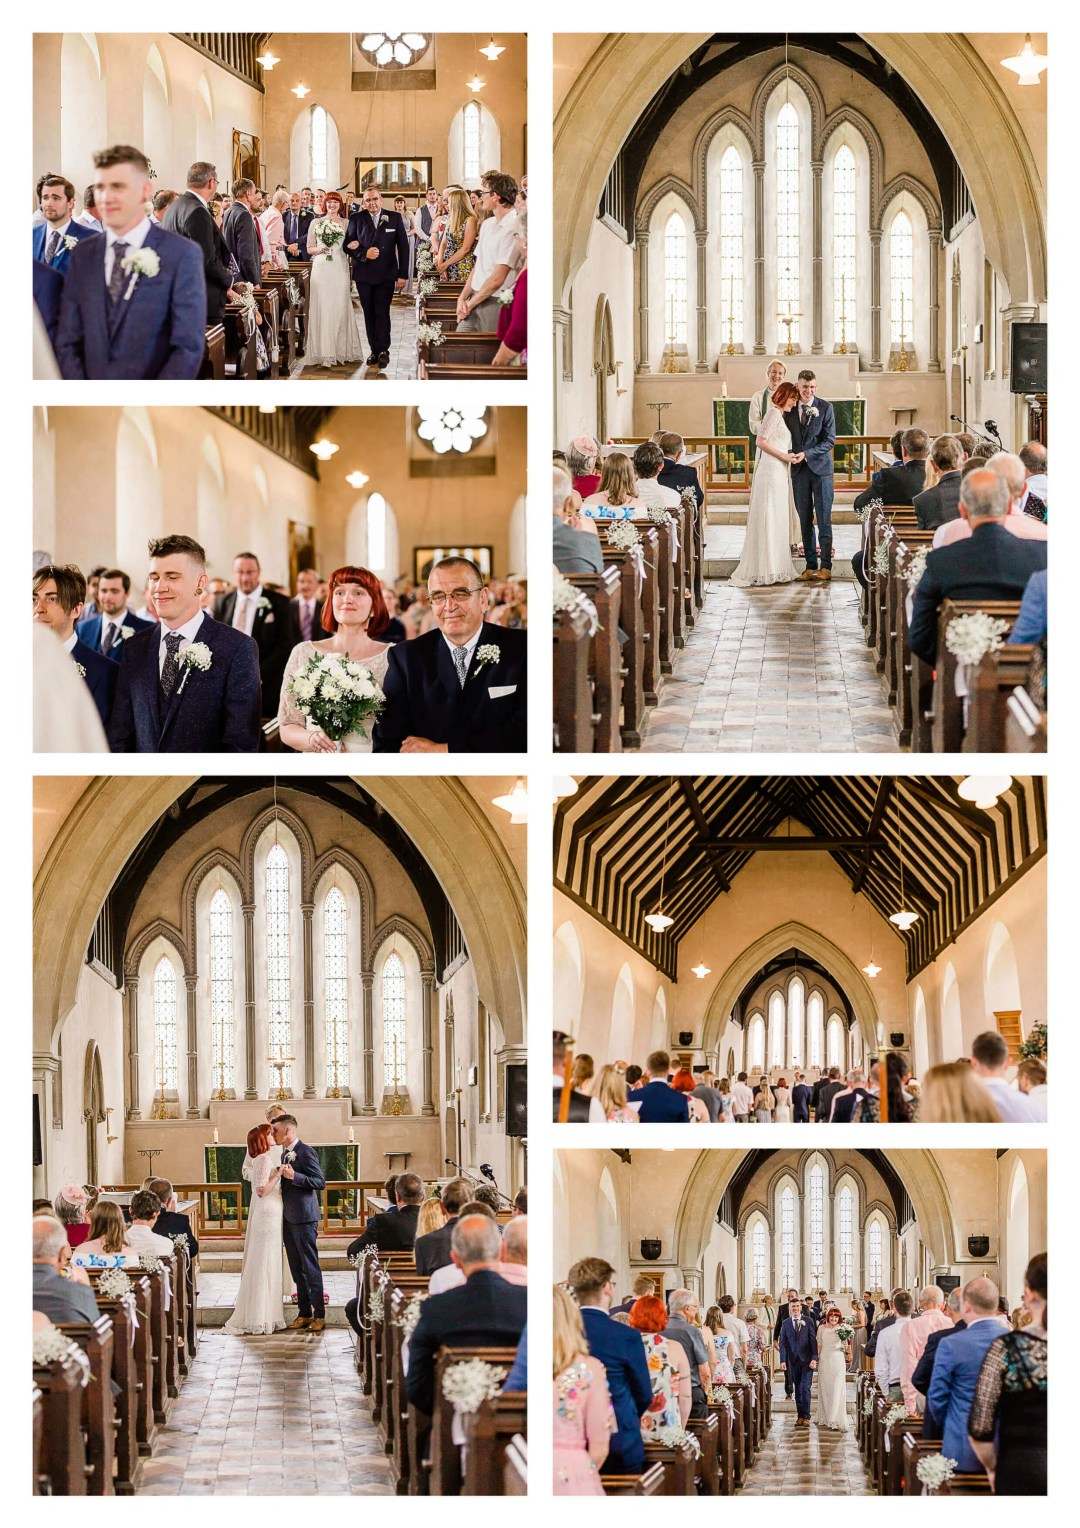 St. Luke's Church wedding ceremony venue in Guildford | Surrey Wedding Photographer